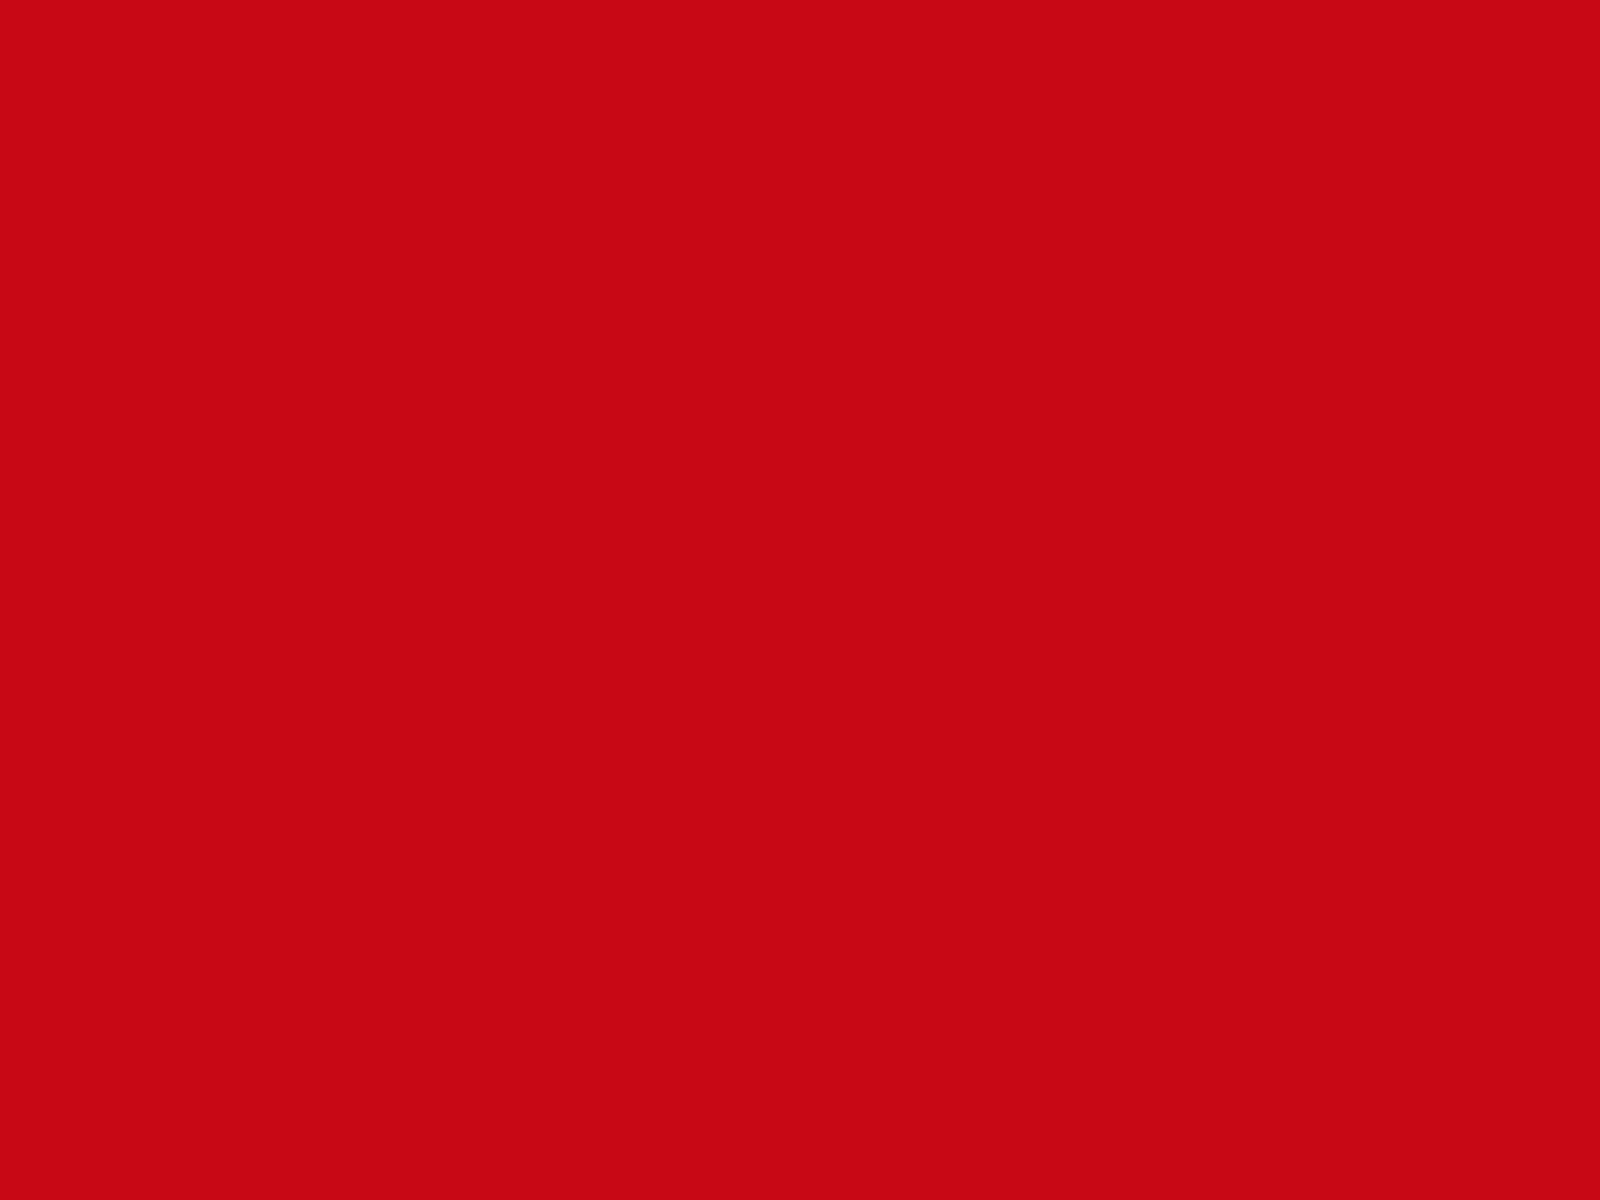 1600x1200 Venetian Red Solid Color Background